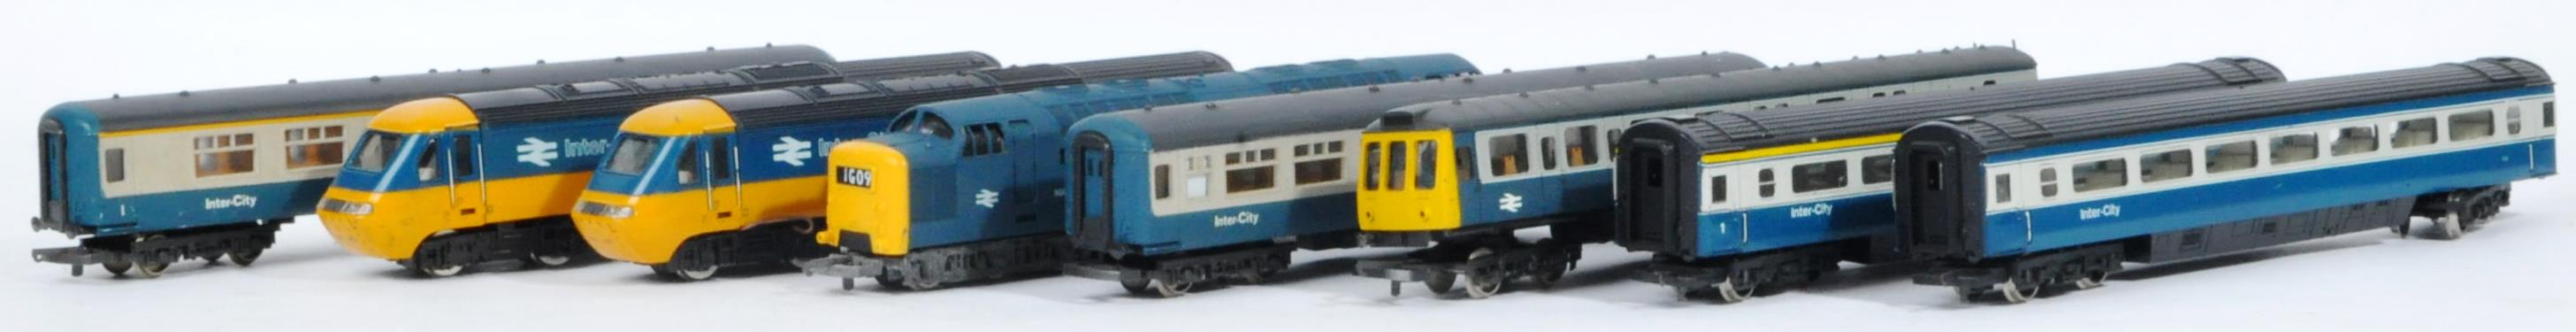 COLLECTION OF ASSORTED DIESEL 00 GAUGE TRAINSET LOCOMOTIVES & CARRIAGES - Image 2 of 10